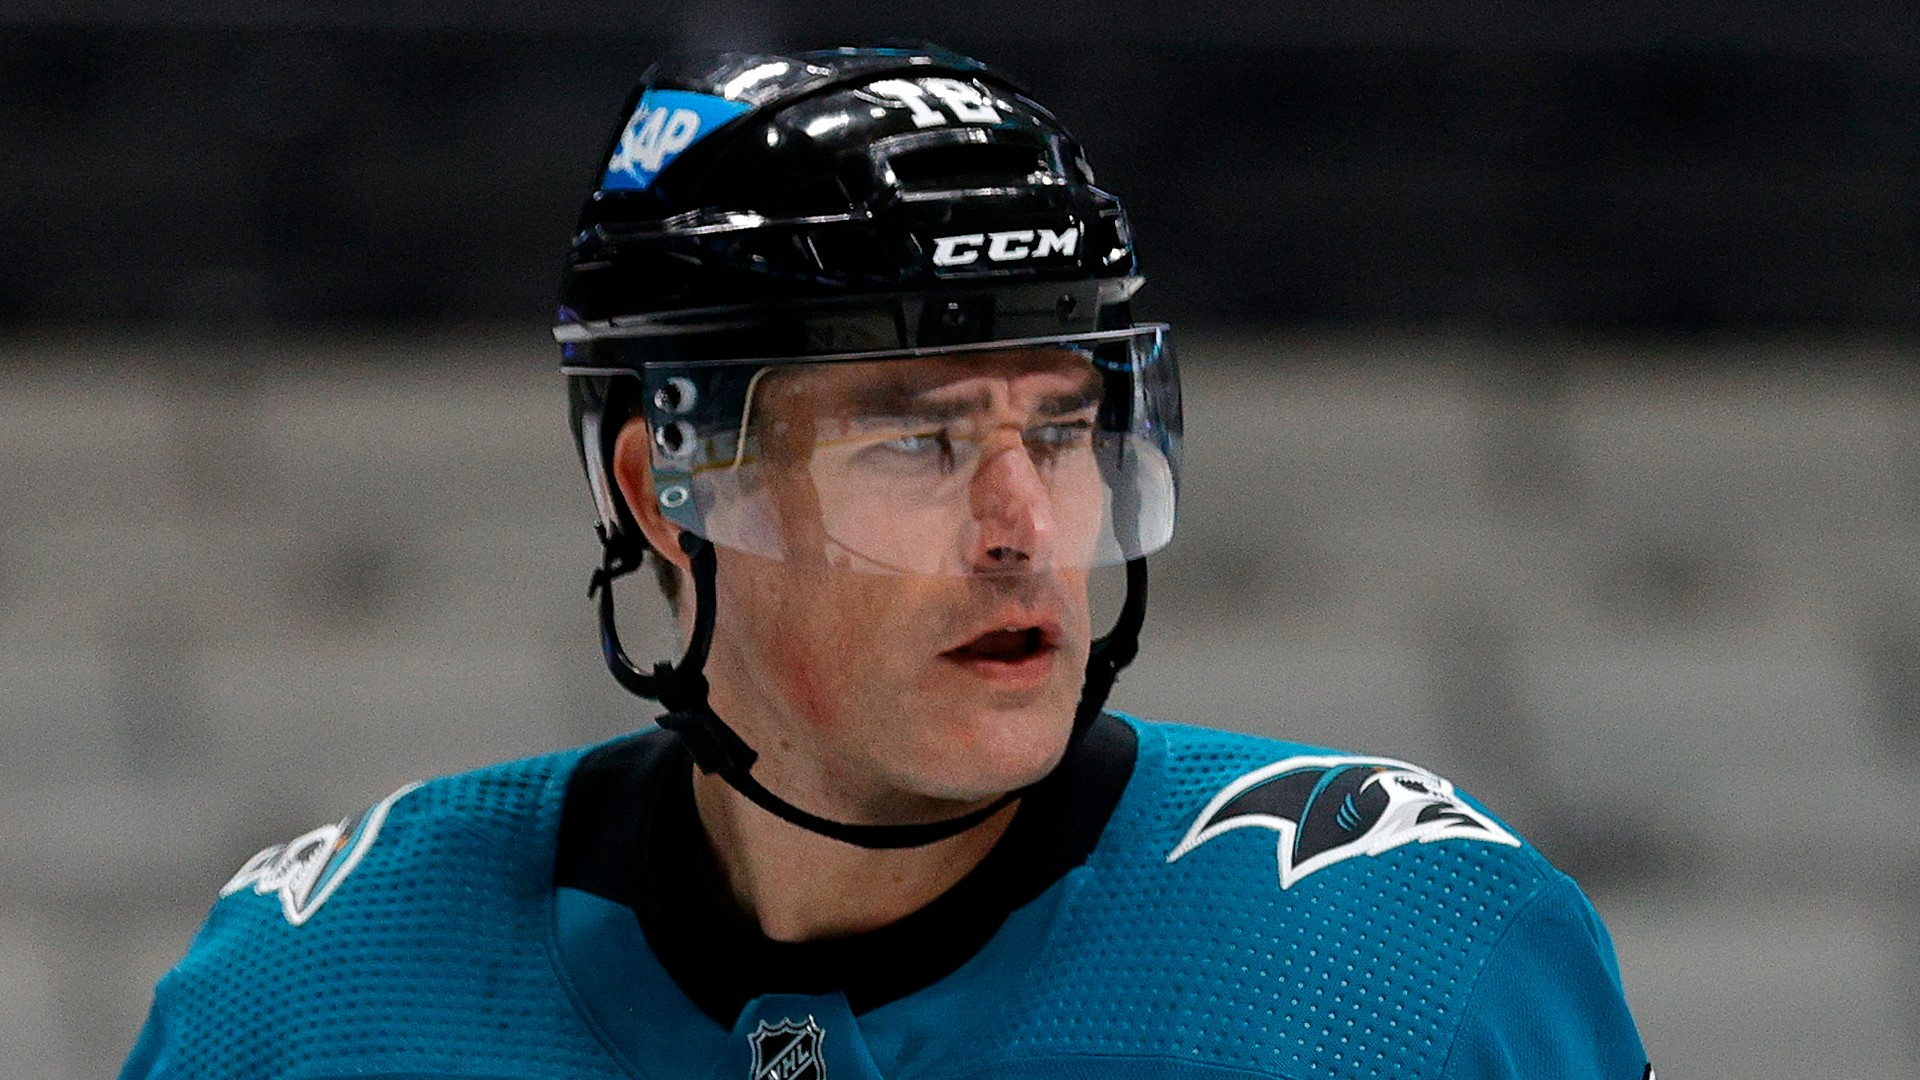 Sharks' Patrick Marleau receives (grammatically incorrect) gloves to commemorate 1768th NHL record-breaking game